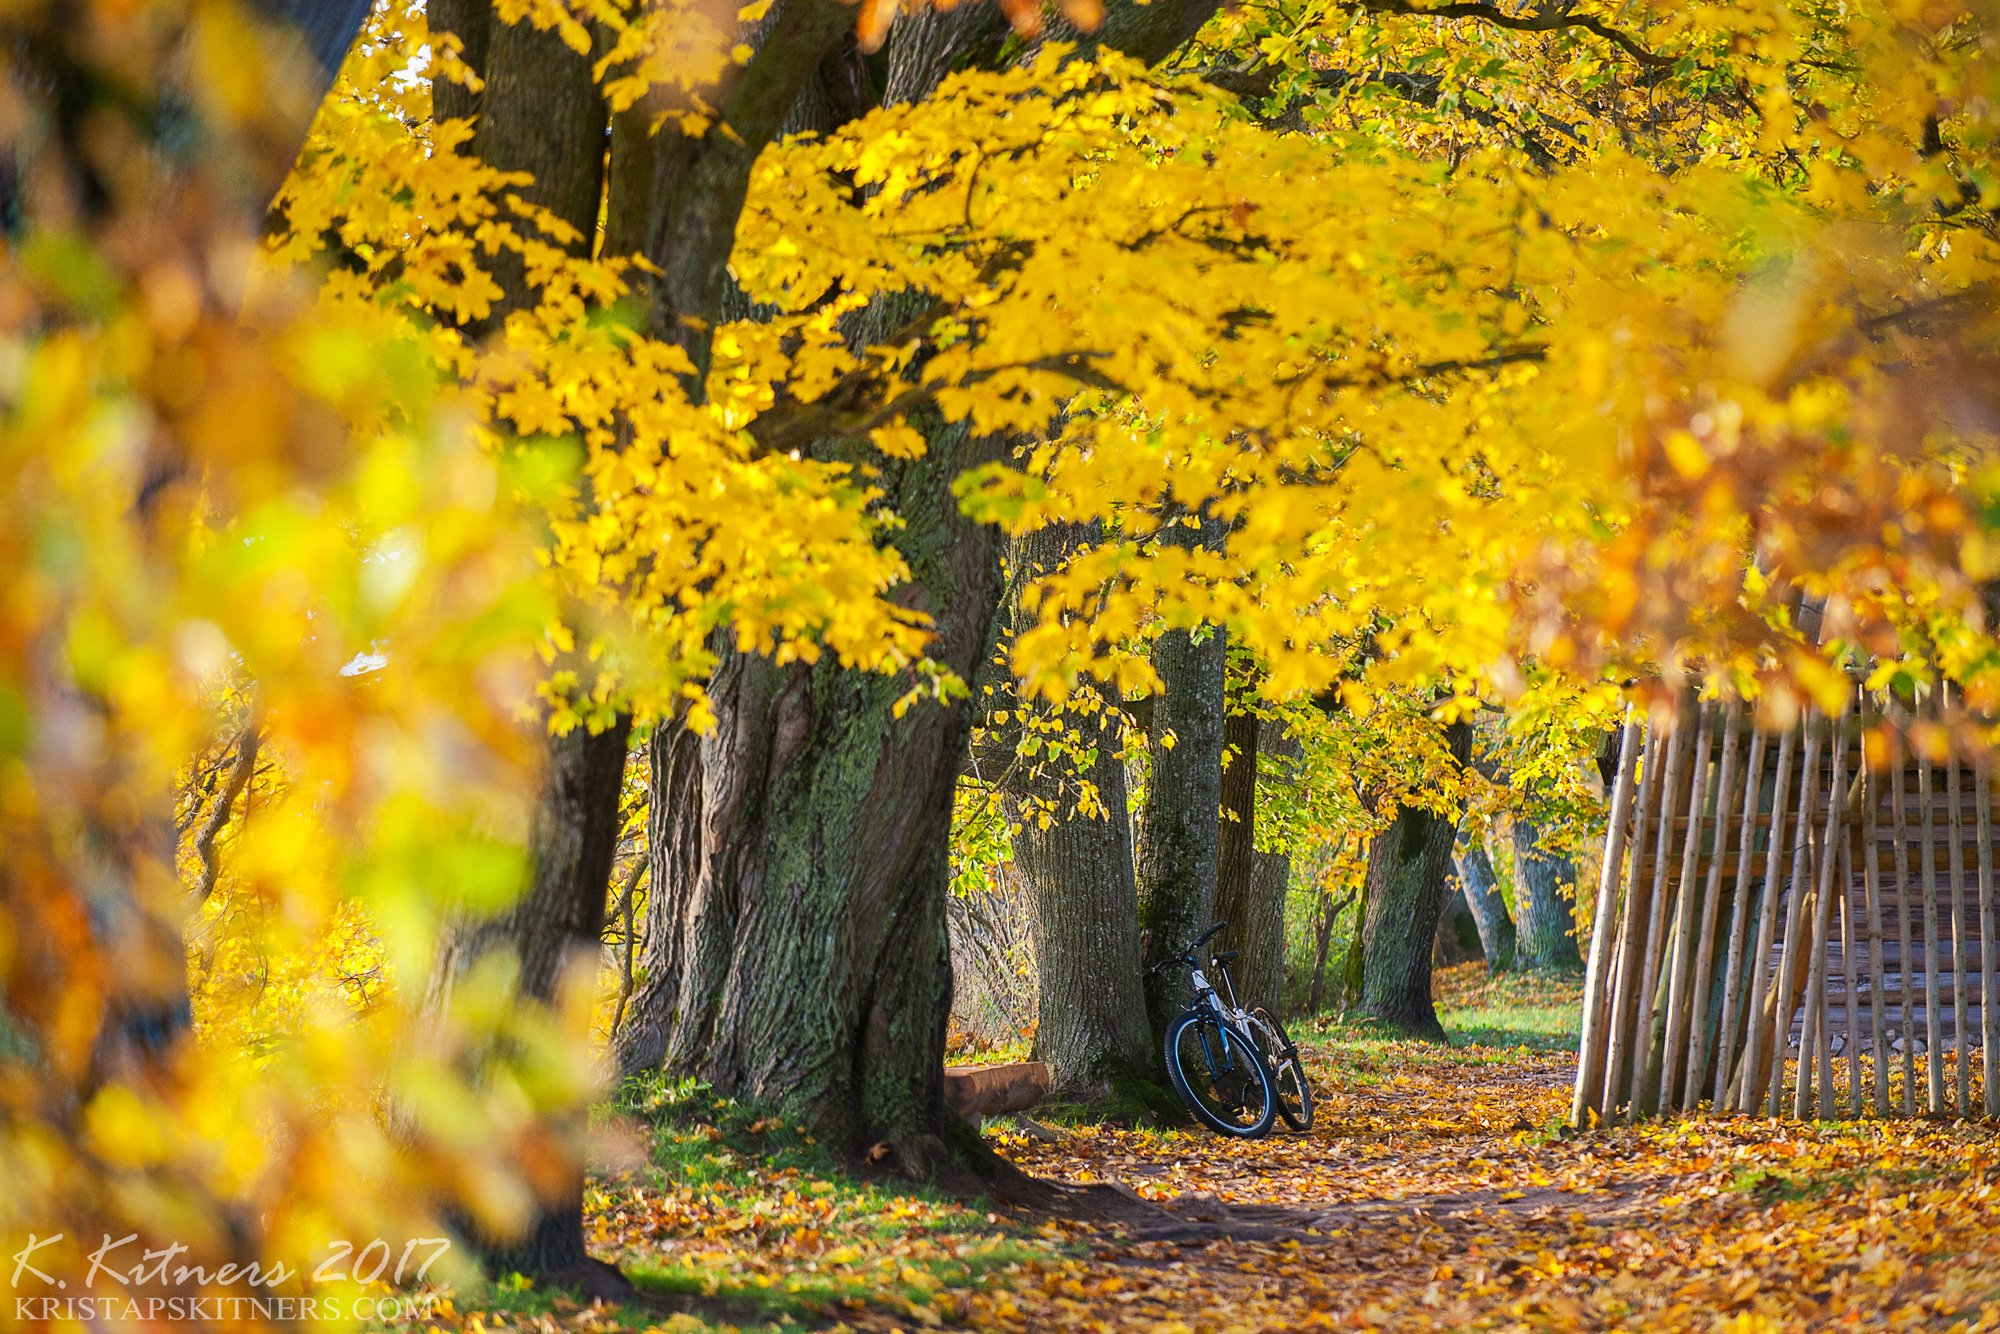 branch grass bush autumn trees leaves road park yellow bicycle countryside light, Kristaps Kitners